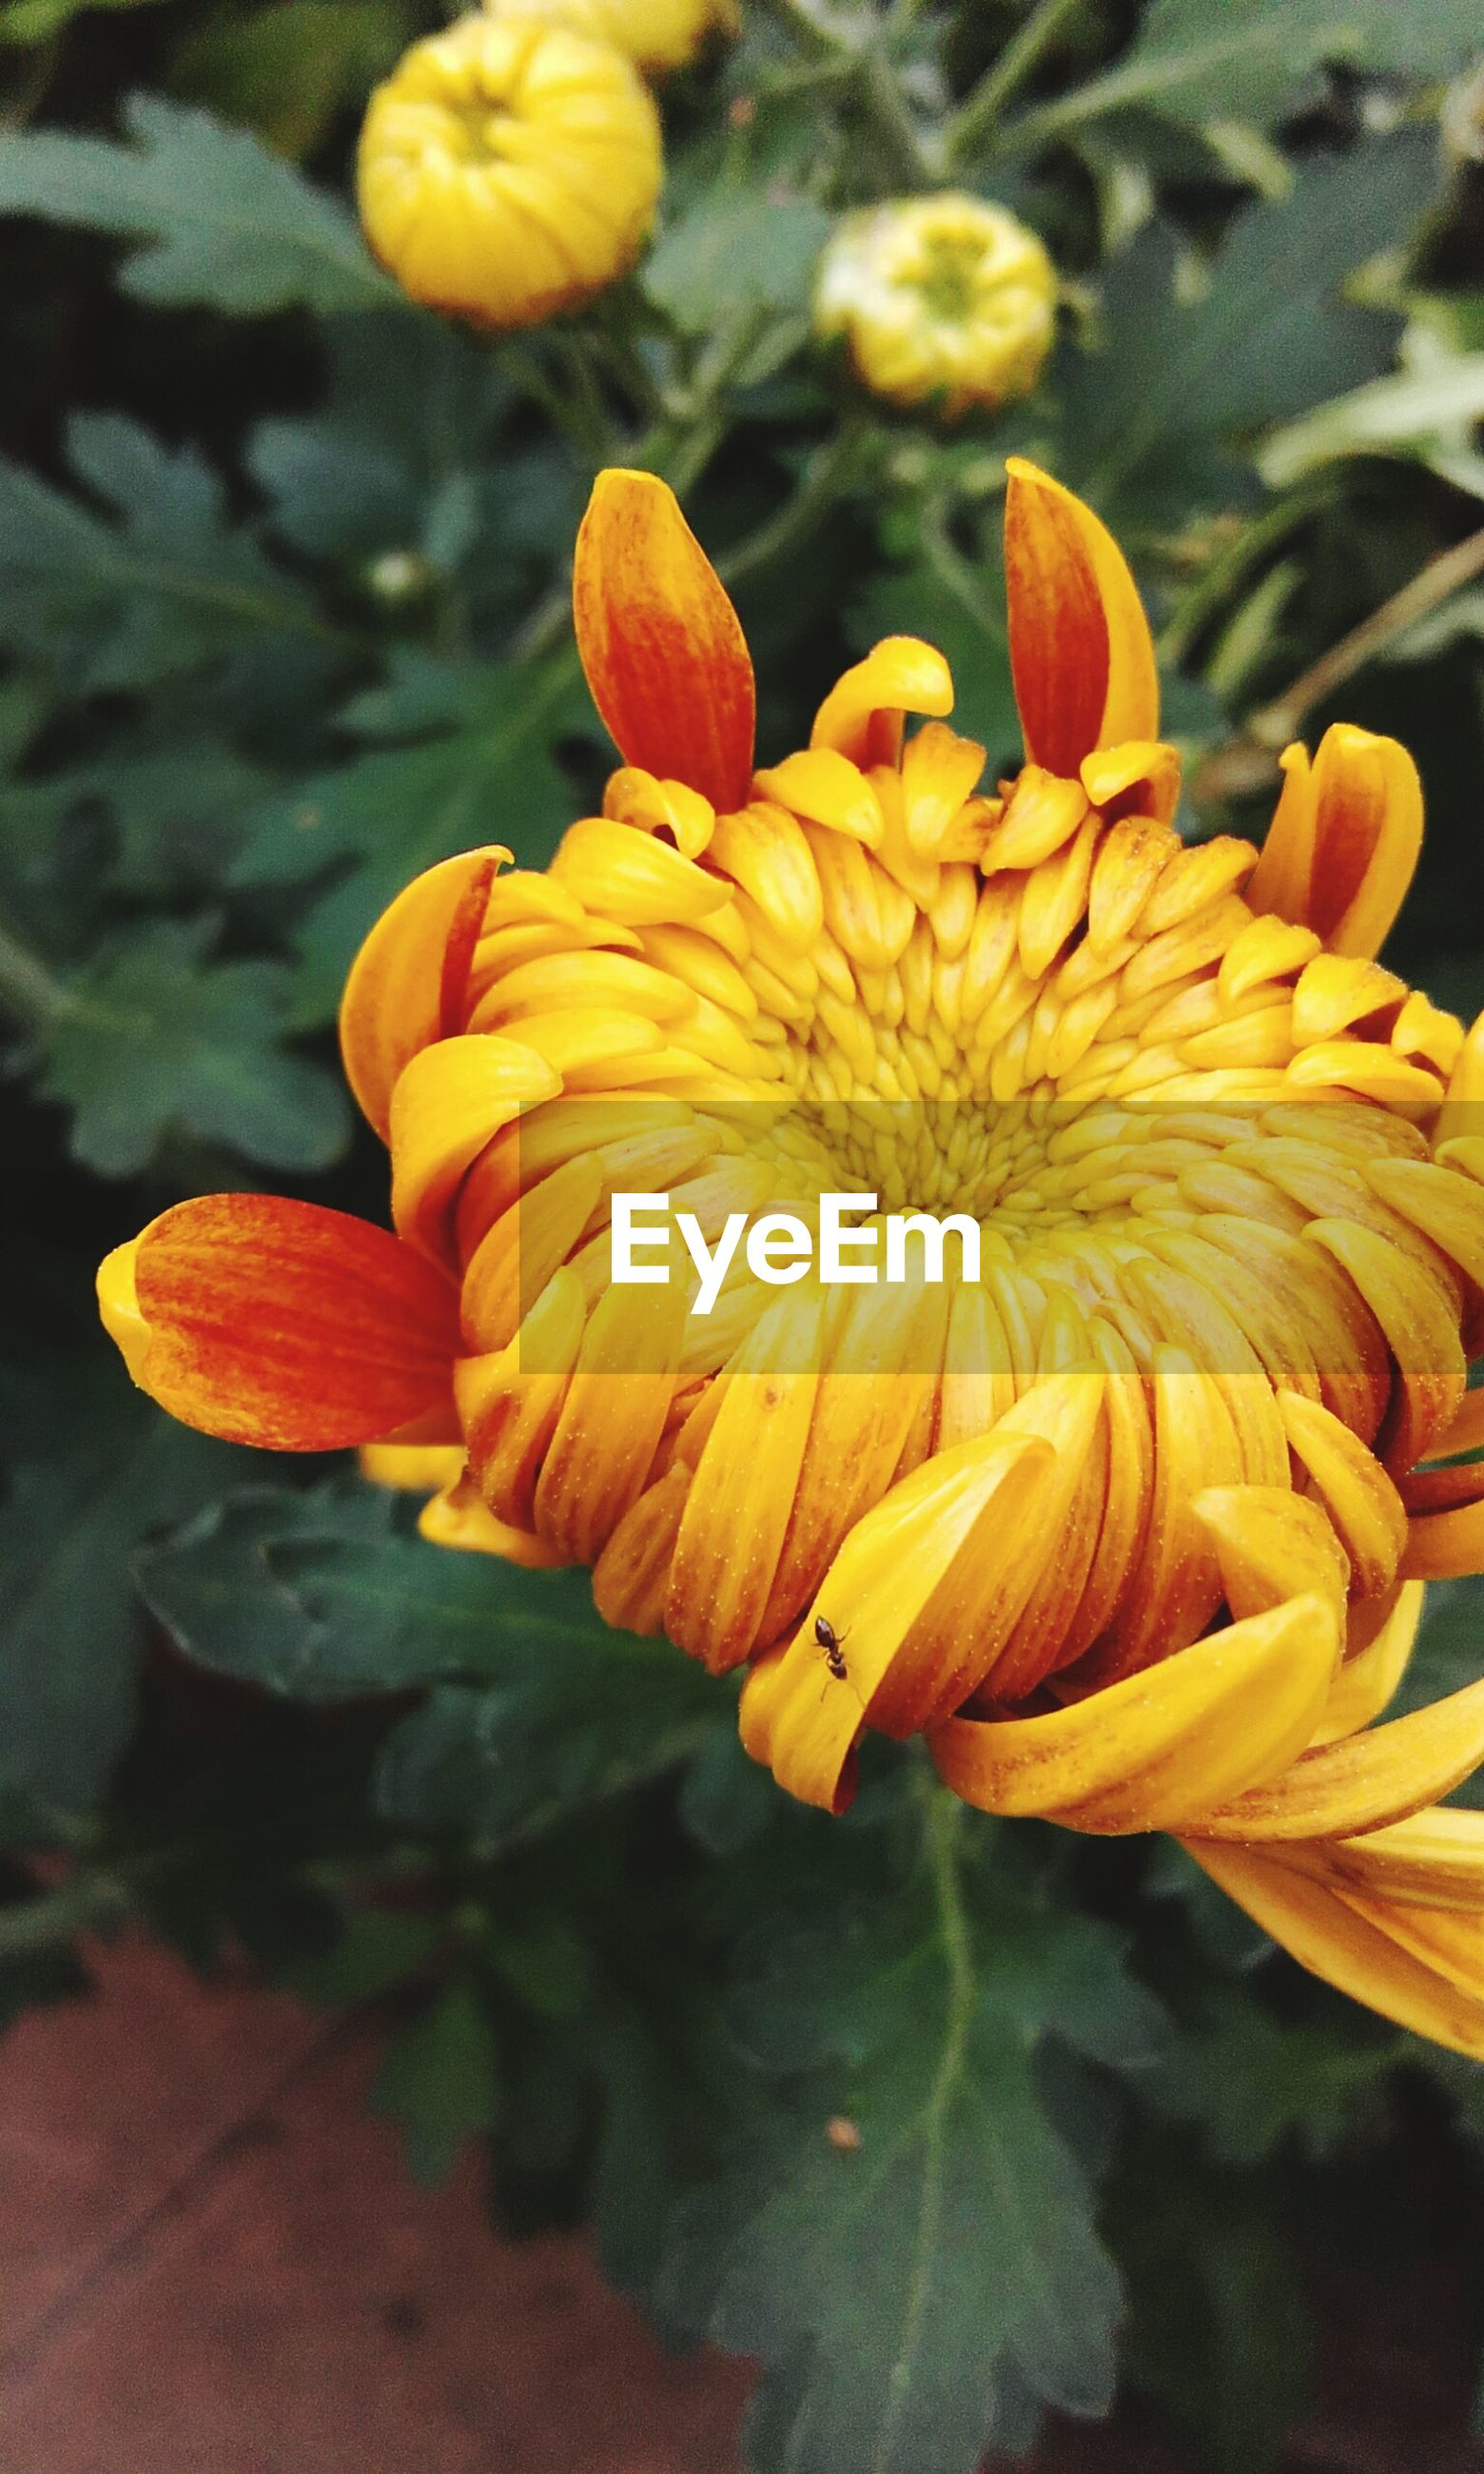 flower, petal, fragility, freshness, flower head, yellow, growth, close-up, beauty in nature, orange color, focus on foreground, nature, plant, blooming, single flower, in bloom, botany, blossom, no people, outdoors